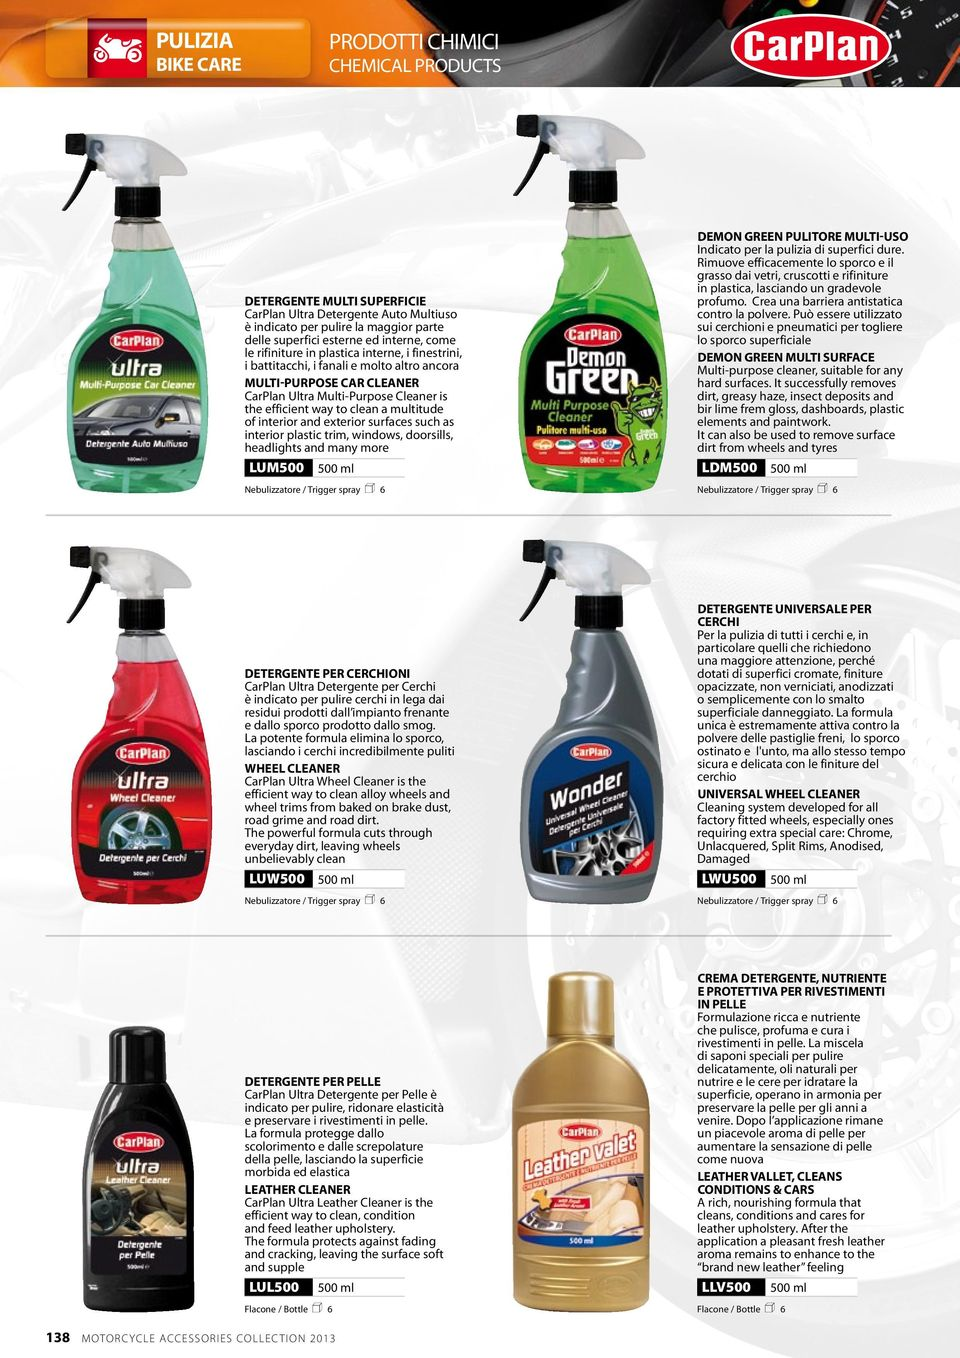 plastic trim, windows, doorsills, headlights and many more LUM500 500 ml Demon Green pulitore multi-uso Indicato per la pulizia di superfici dure.